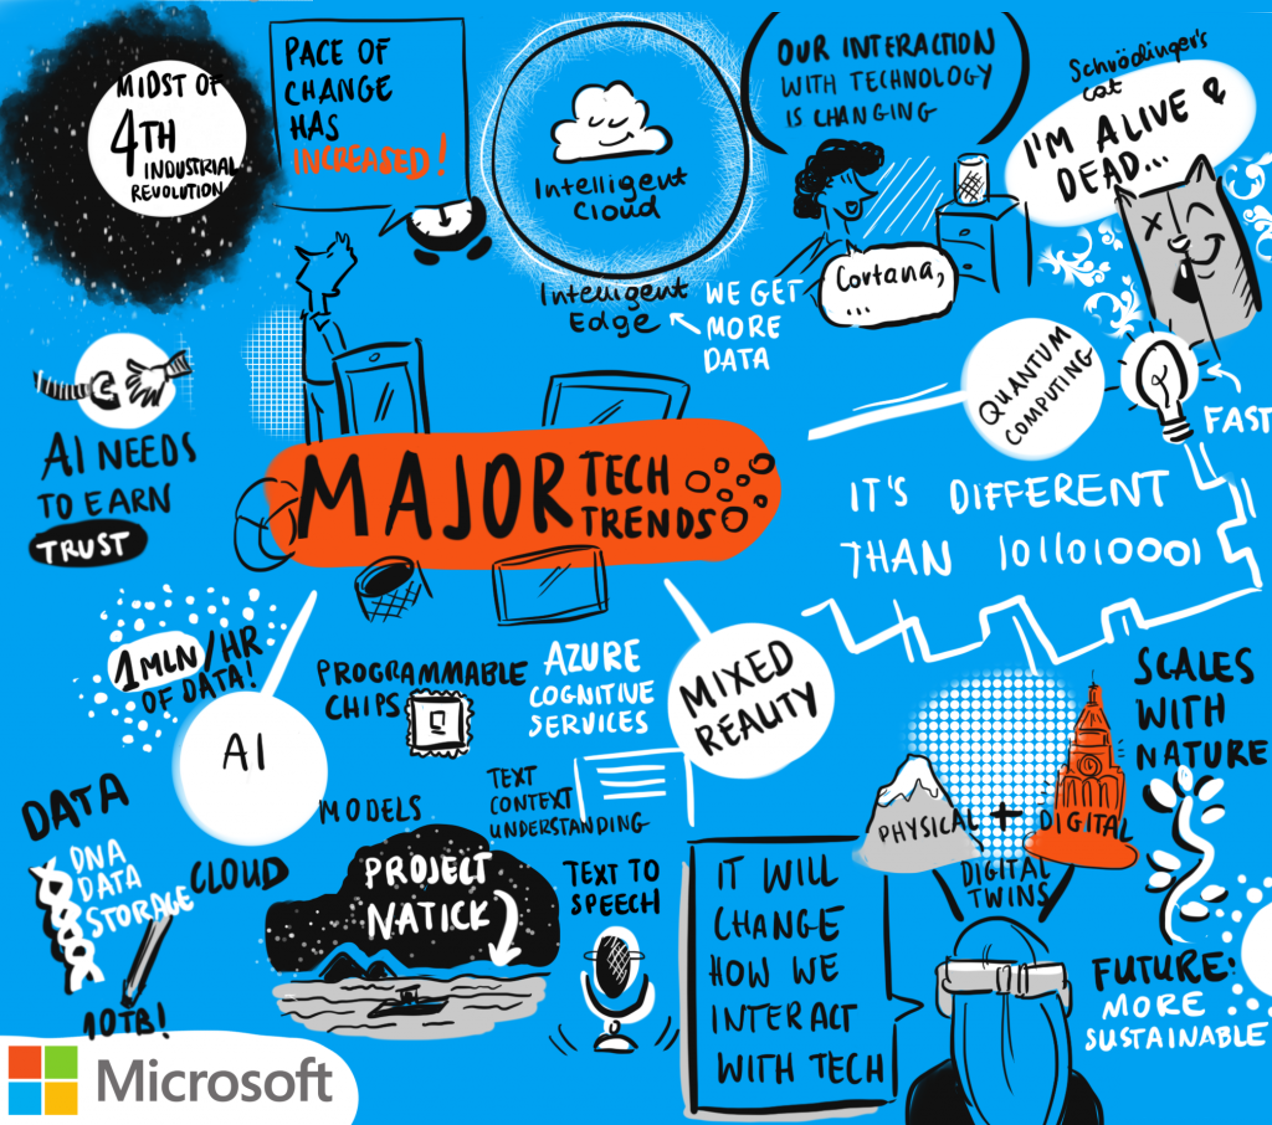 Sketch showing the major tech trends, including AI, mixed reality and quantum computing